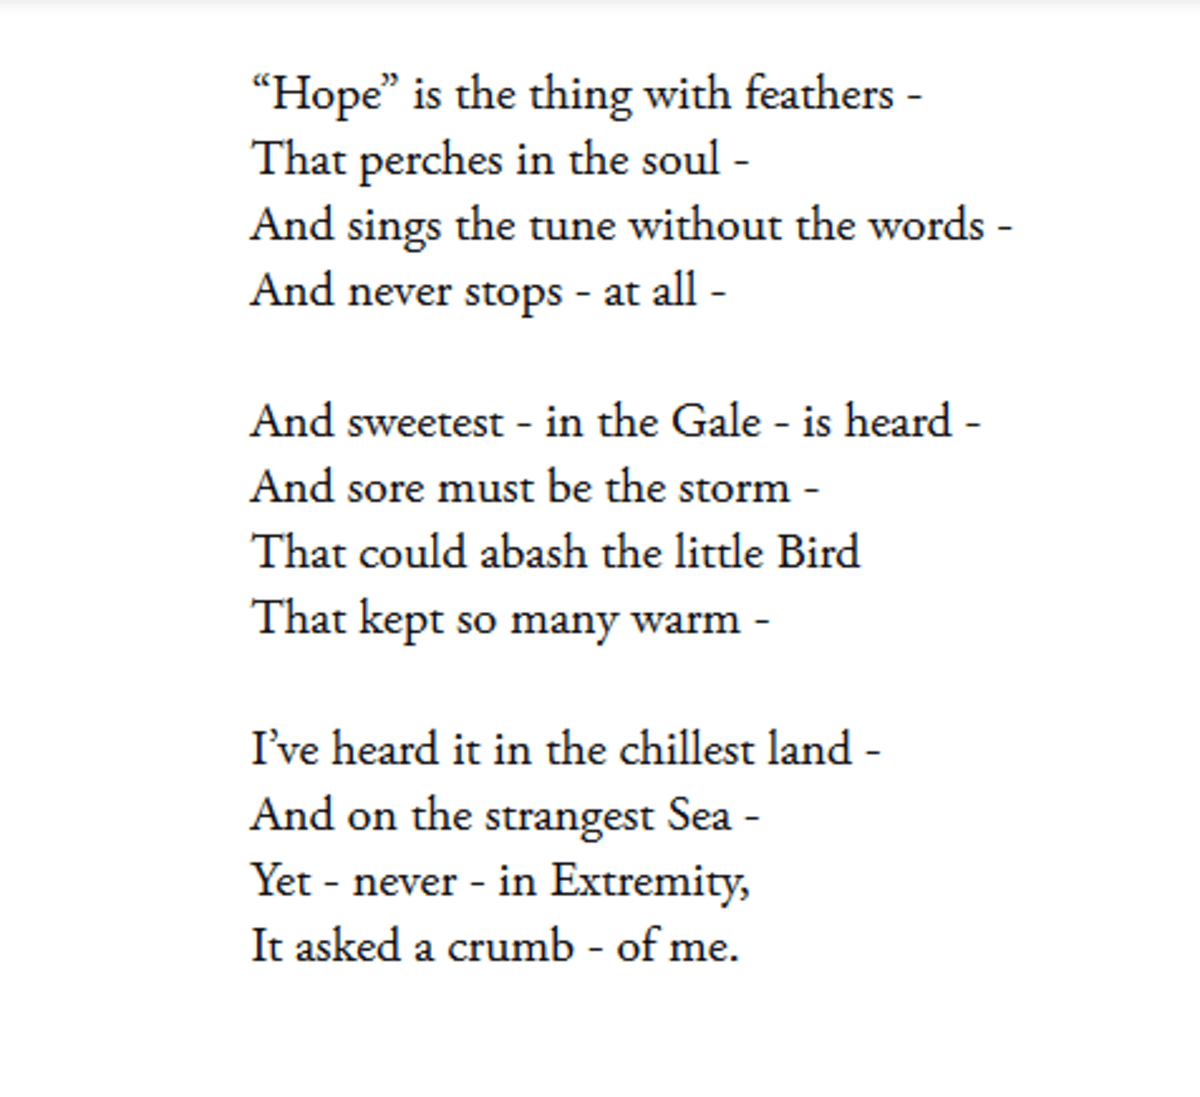 Ysis Of Poem Hope Is The Thing With Feathers By